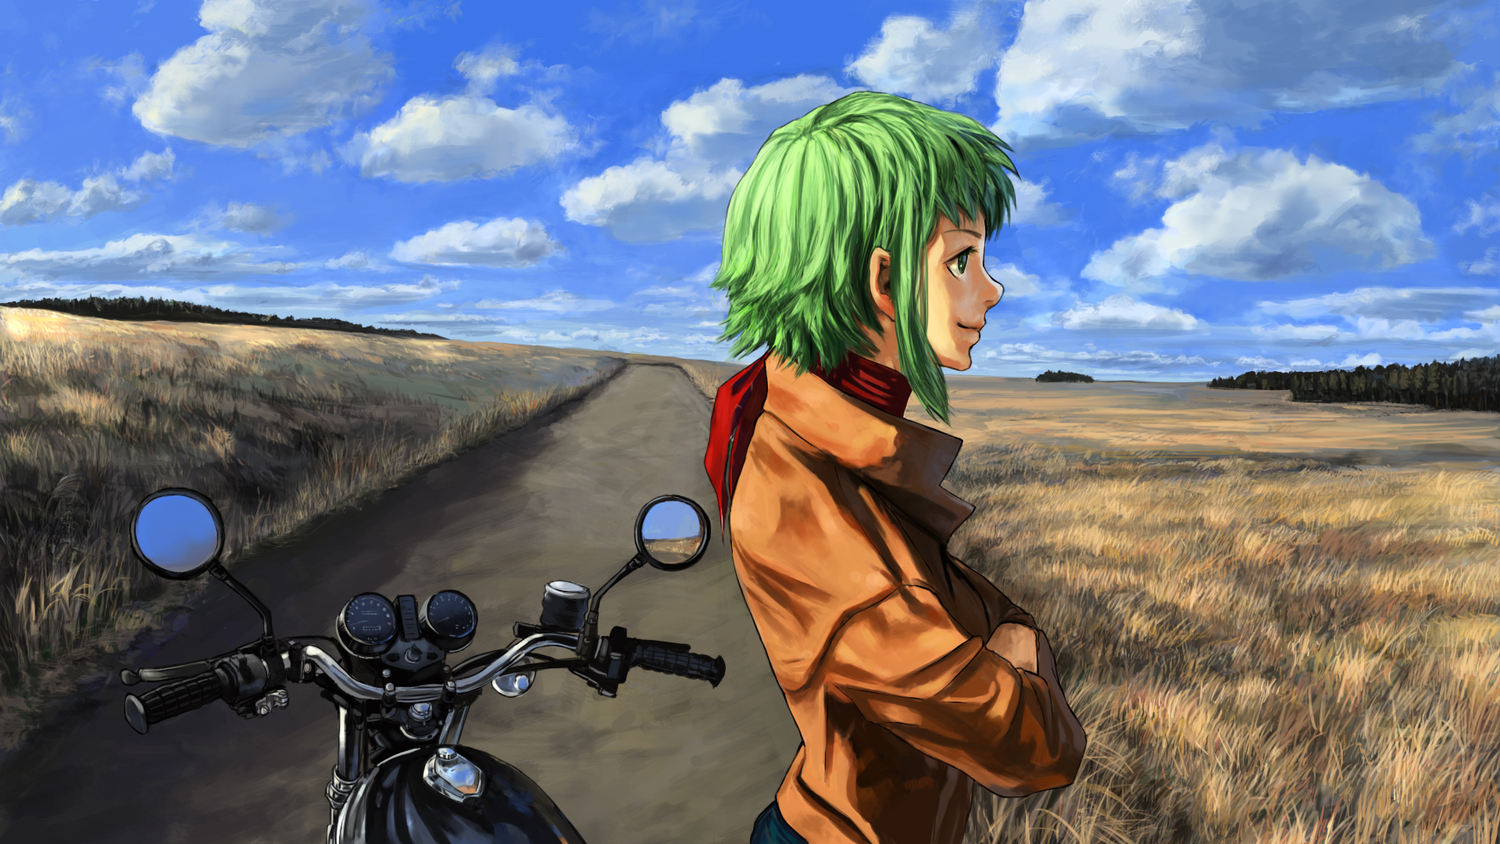 Gumi-and-Motorcycle-wallpaper-wp5806199